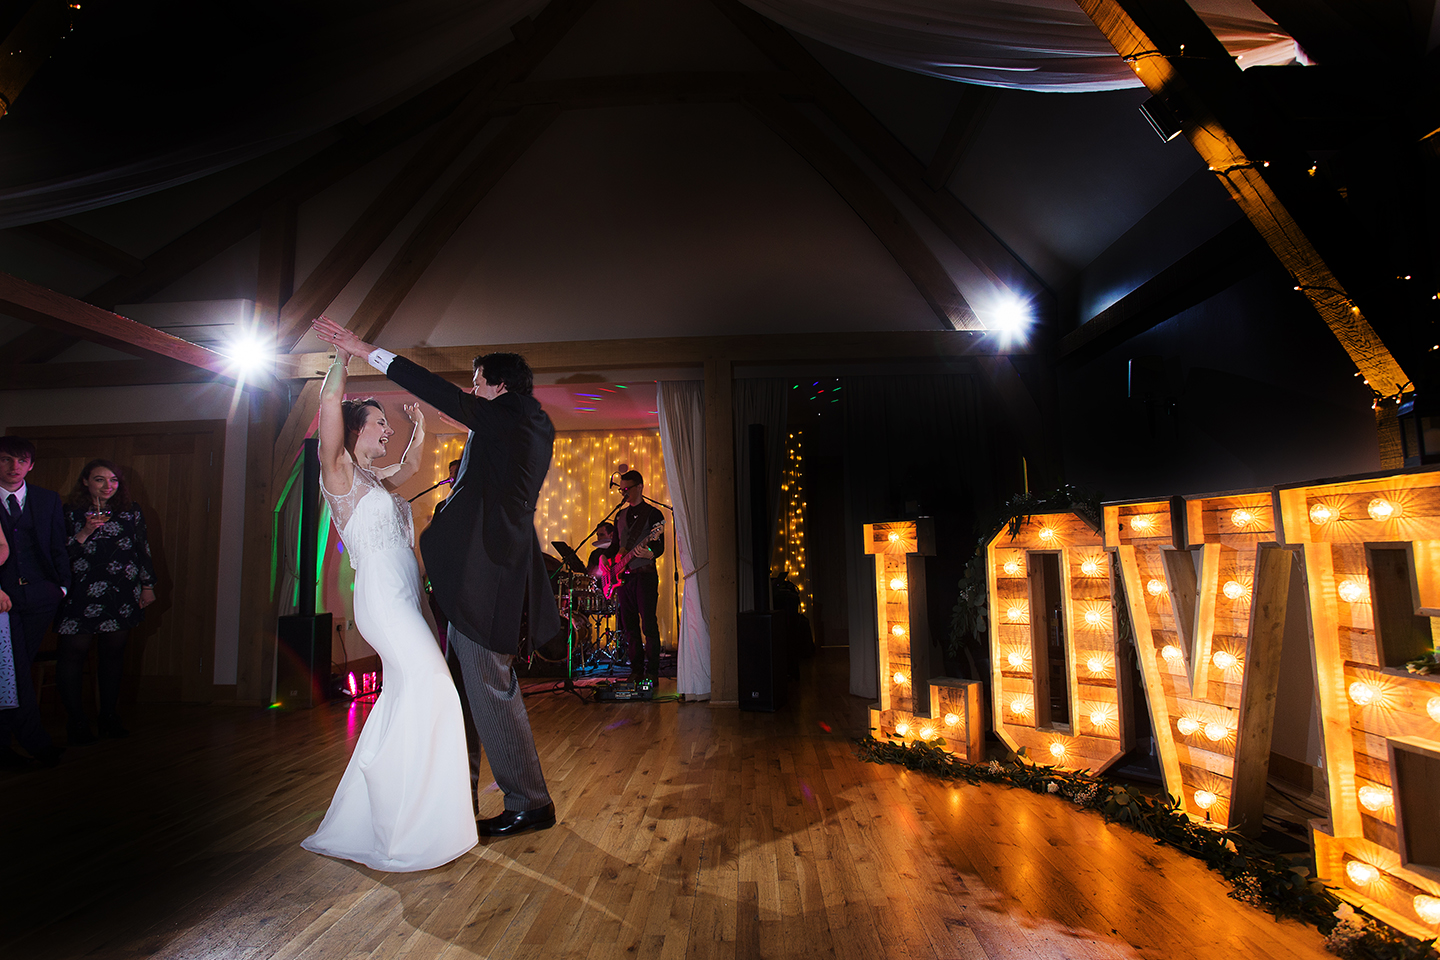 The bride and groom perform their first dance in front of giant light up love letters during their reception at Bassmead Manor Barns